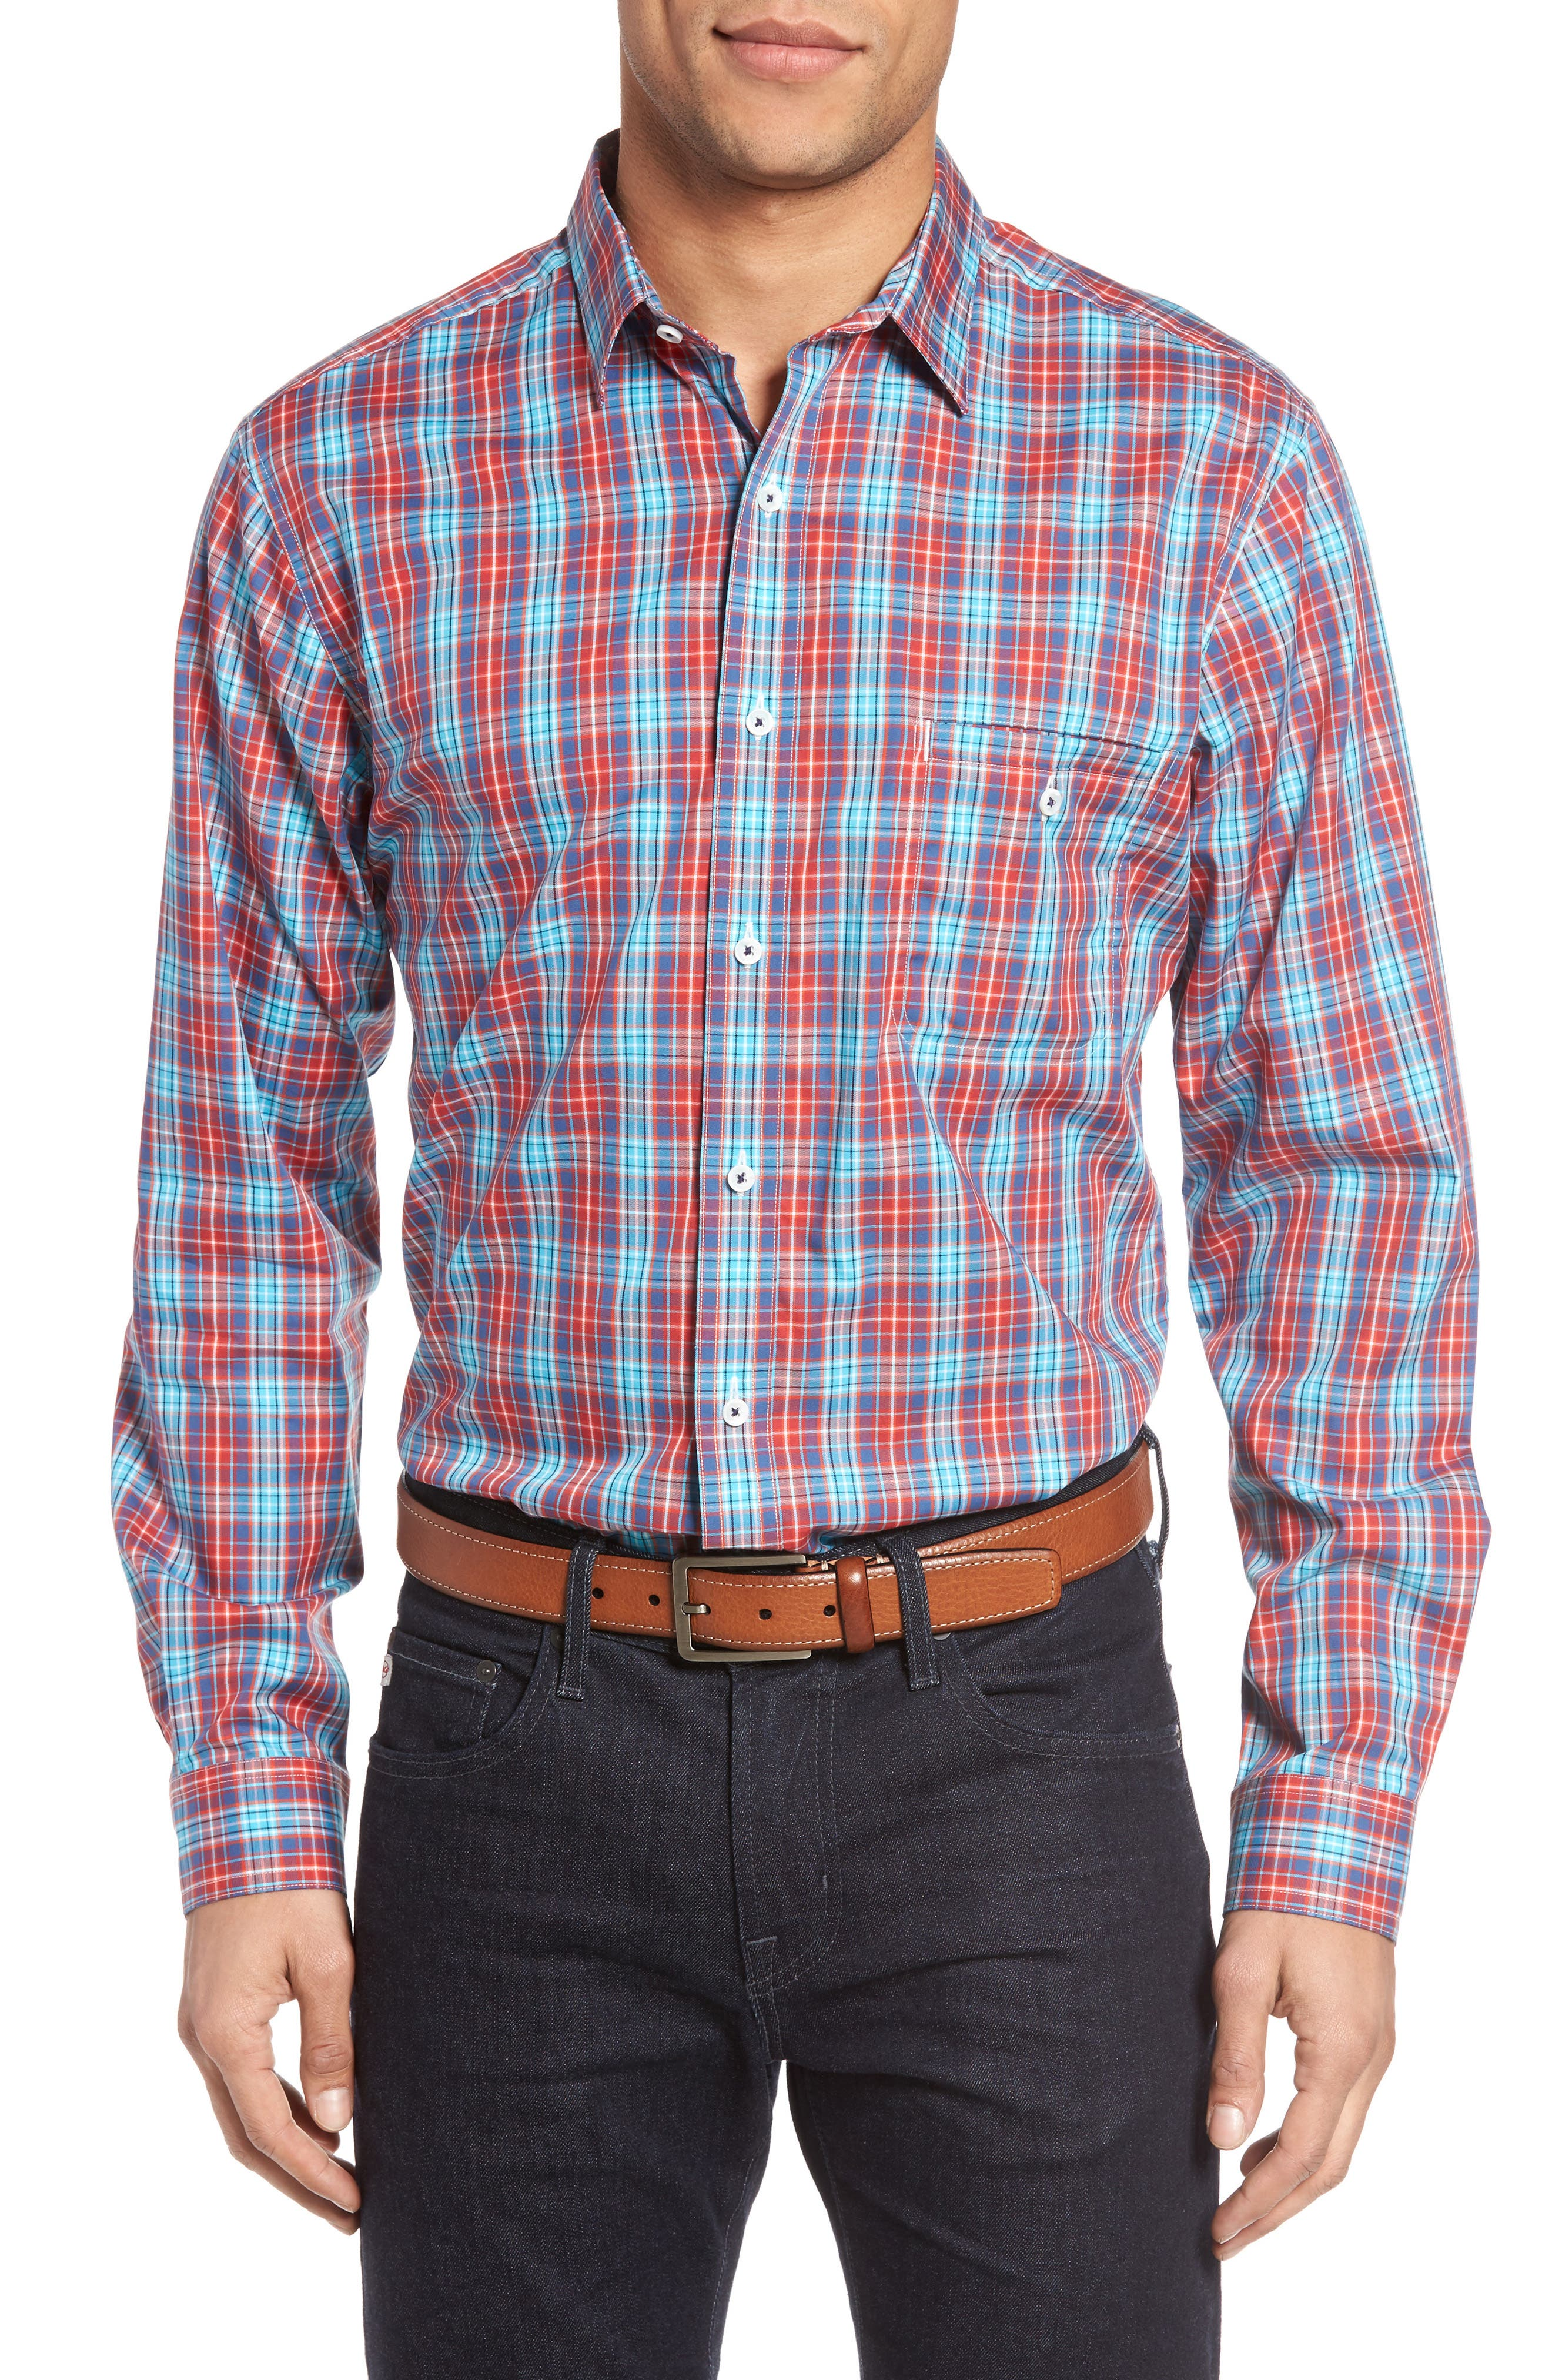 MAKER & COMPANY Grid Check Sport Shirt